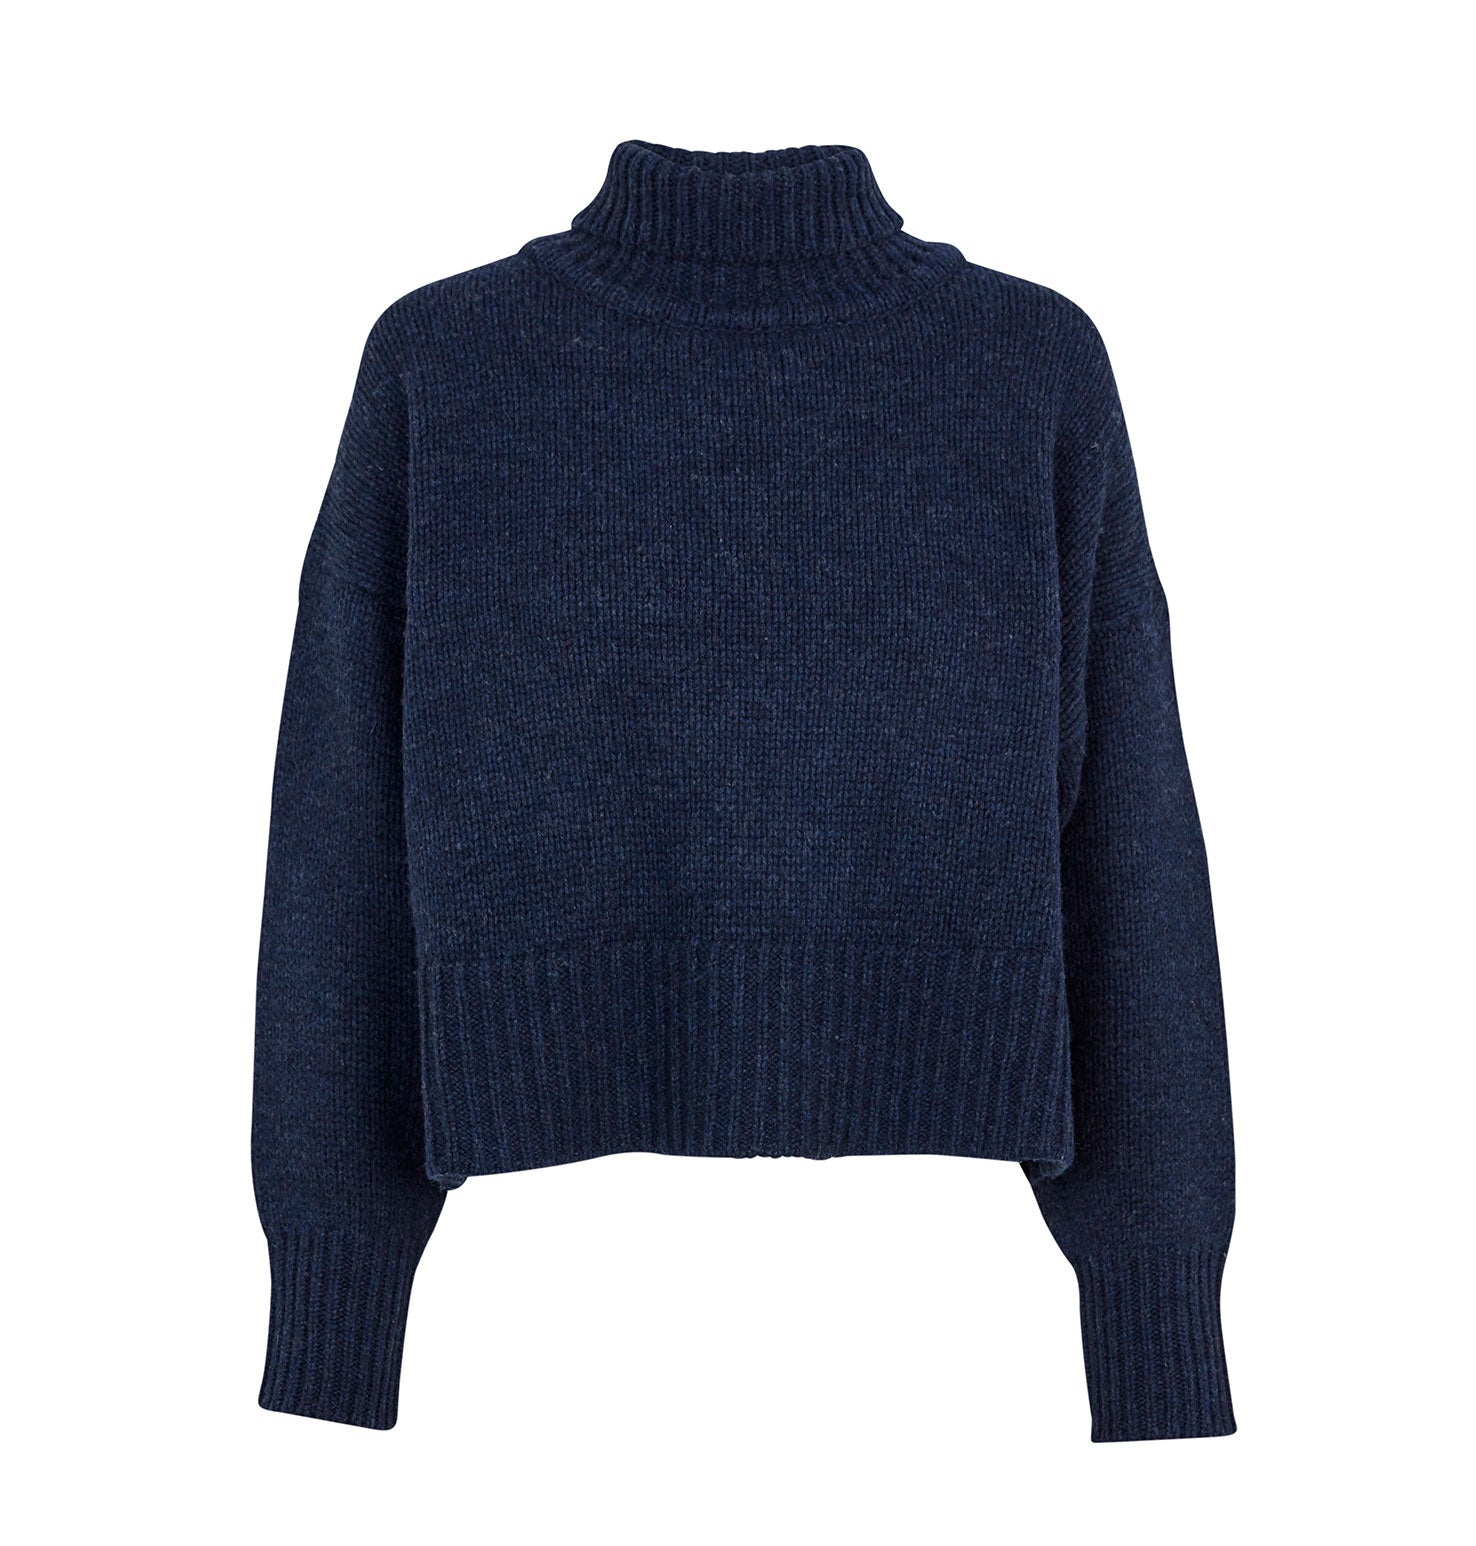 Turtle Neck Cropped Knit - Navy